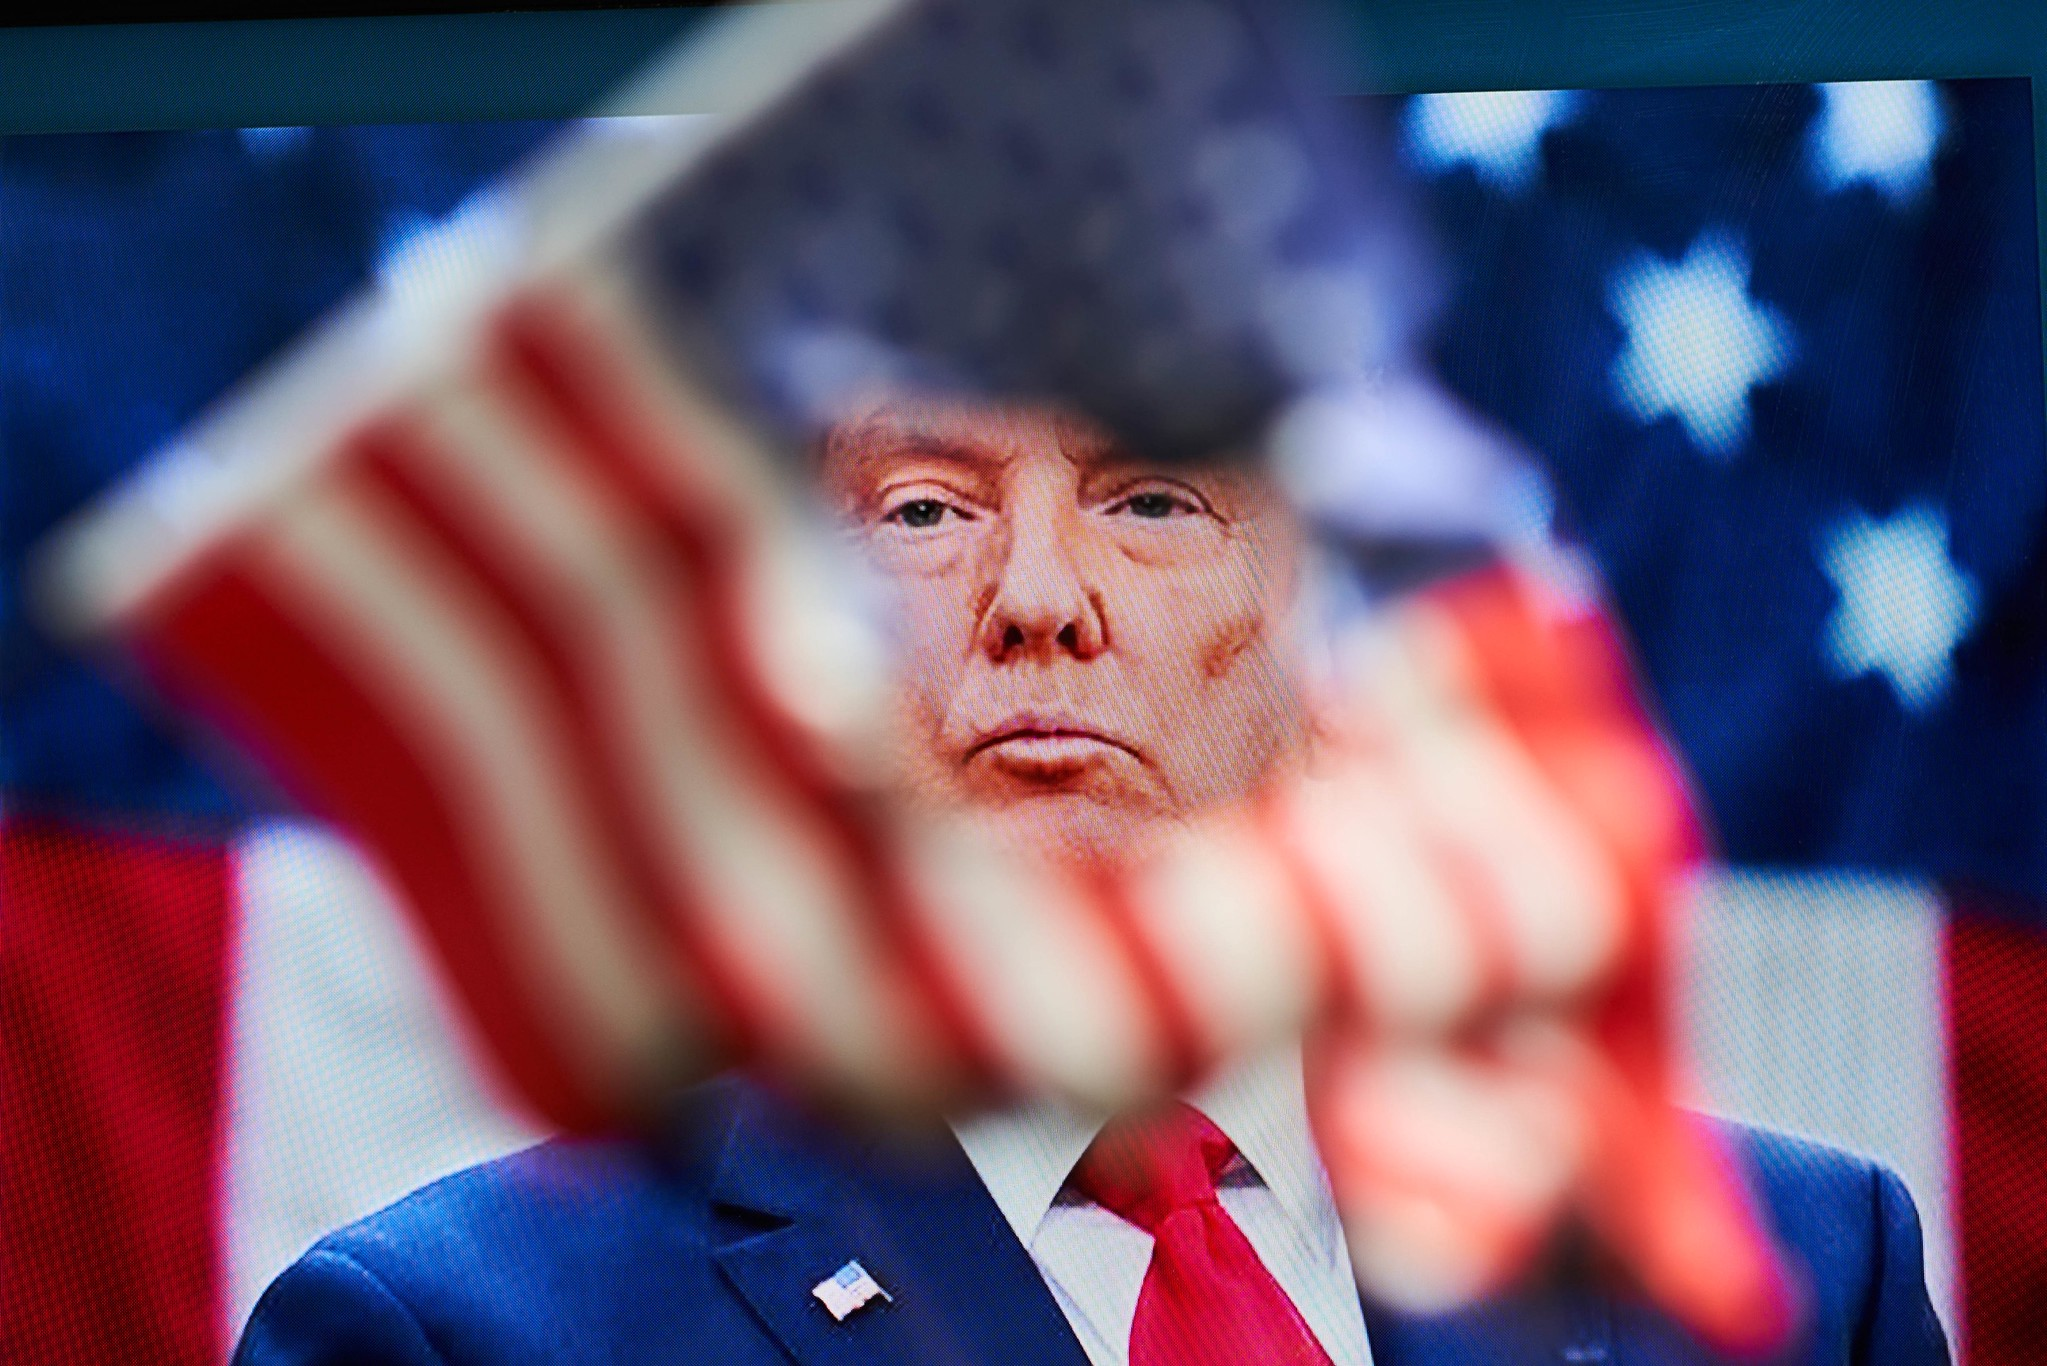 Donald Trump's face as seen through a half-burnt American flag with a hole, against a flag backdrop